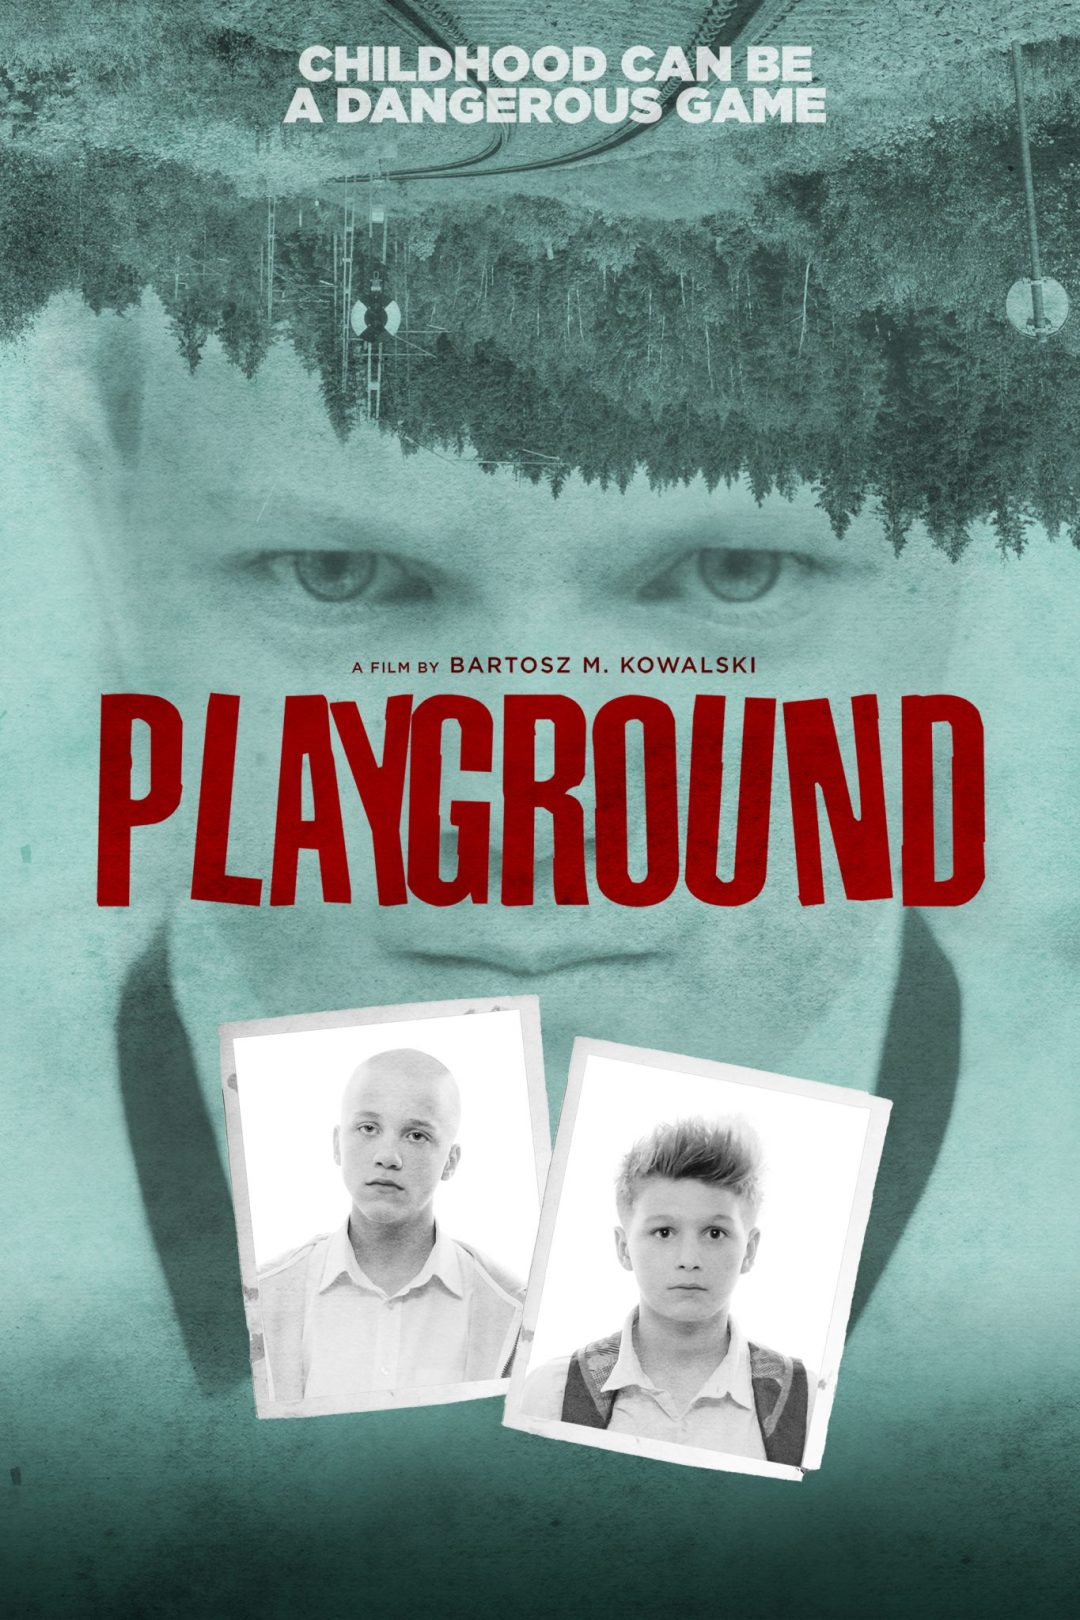 'The Playground' – Childhood Can be a Dangerous Game